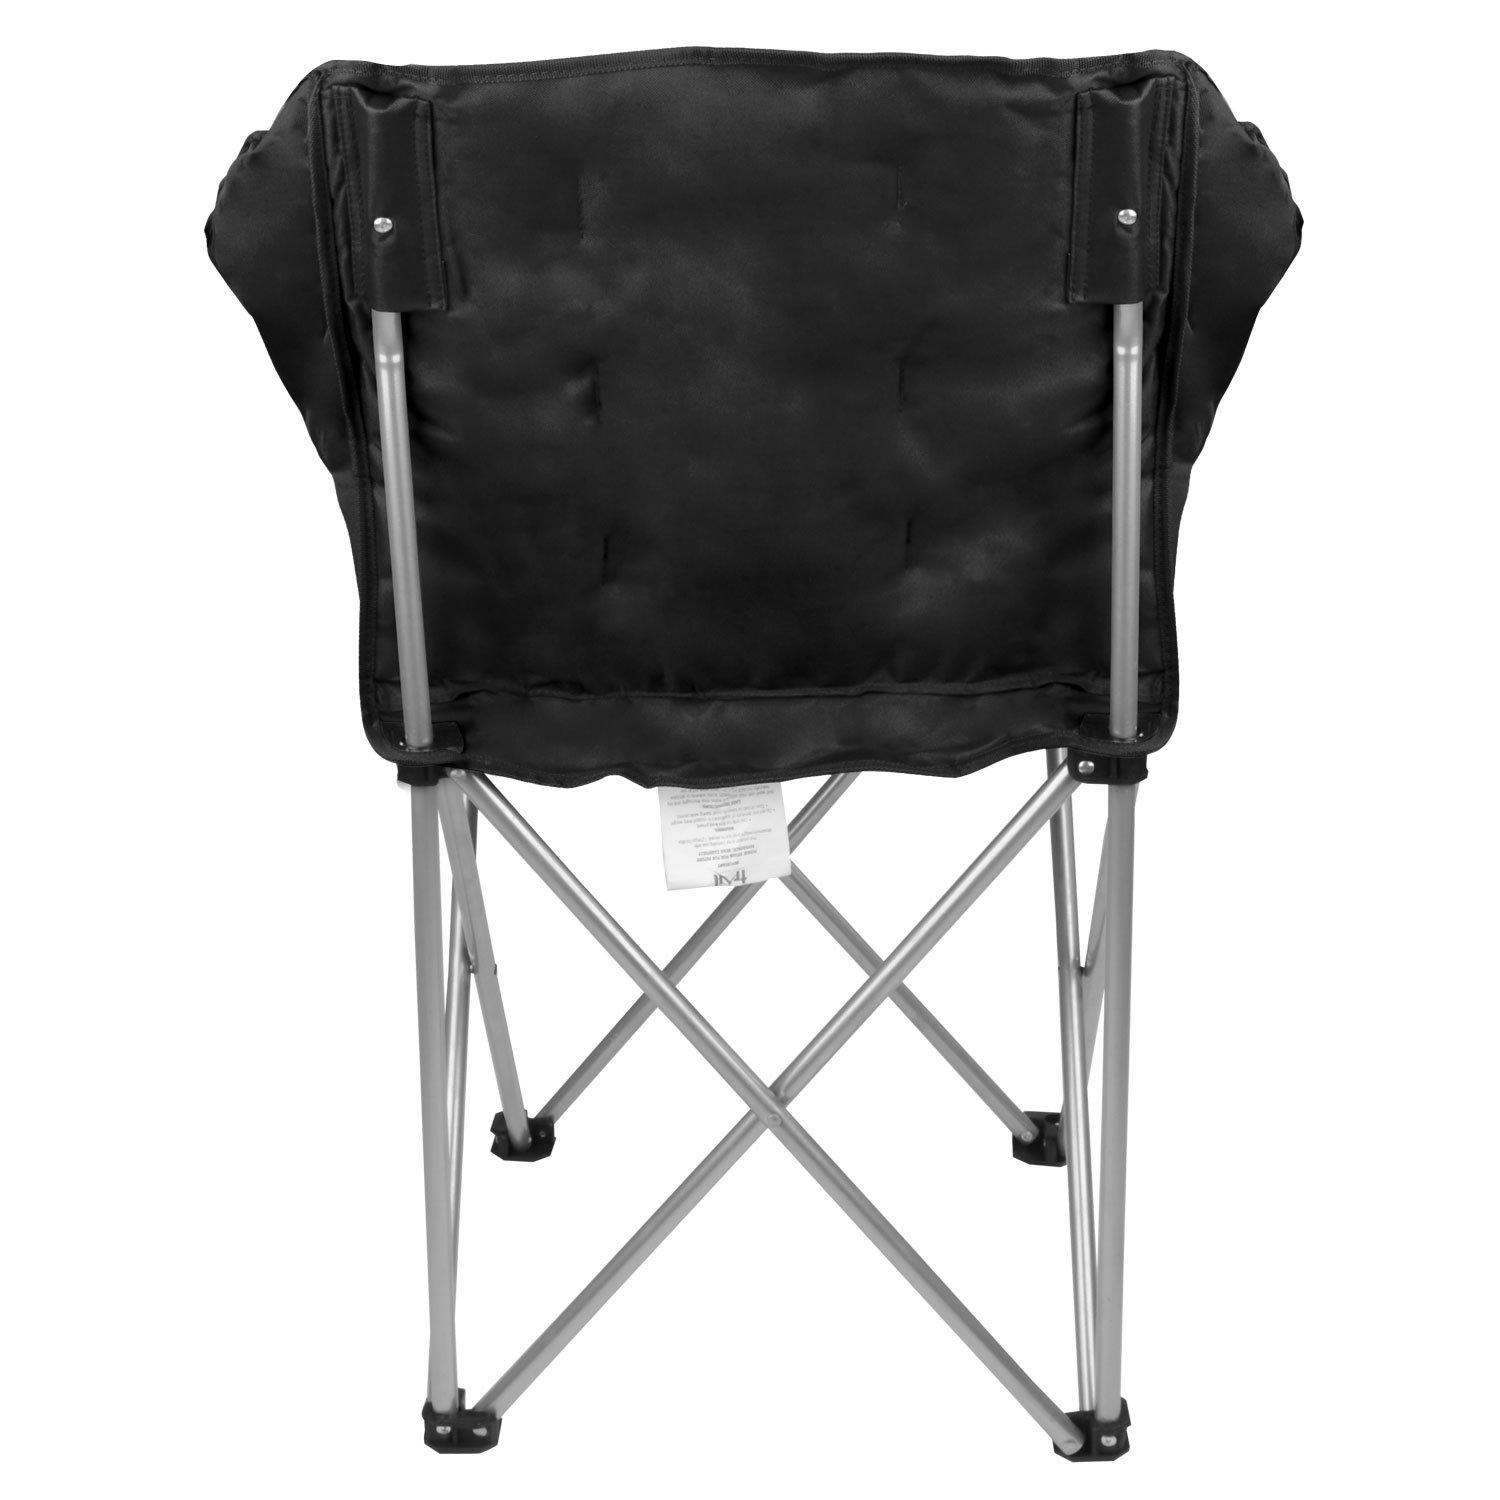 Folding Camping Chair Portable Padded Tub Seat Outdoor Fishing